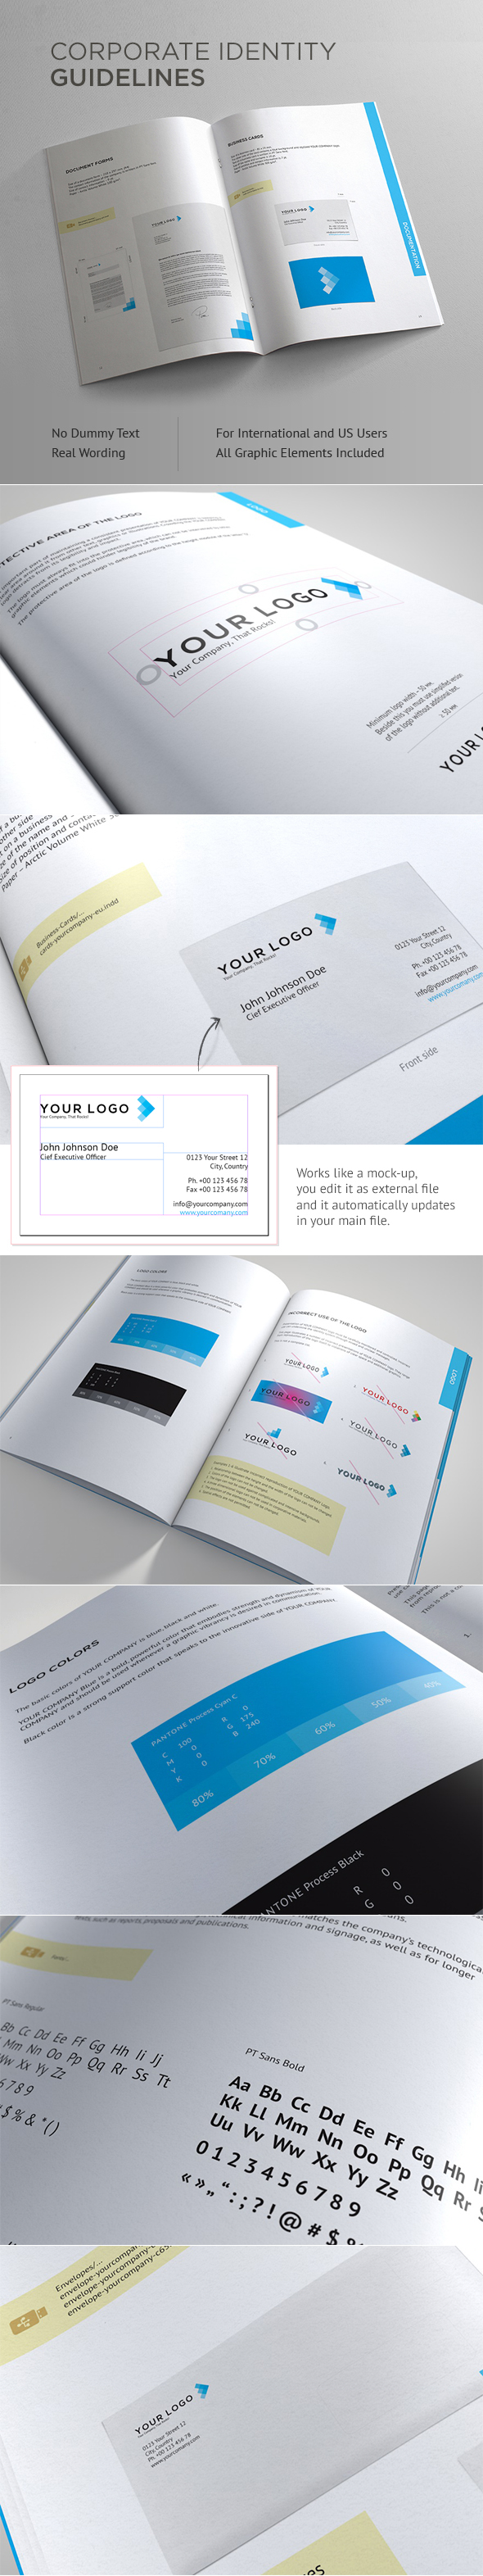 corporate identity the concept its measurement Leitz corporate identity concept leitzworld loading unsubscribe from leitzworld cancel unsubscribe working subscribe subscribed unsubscribe.